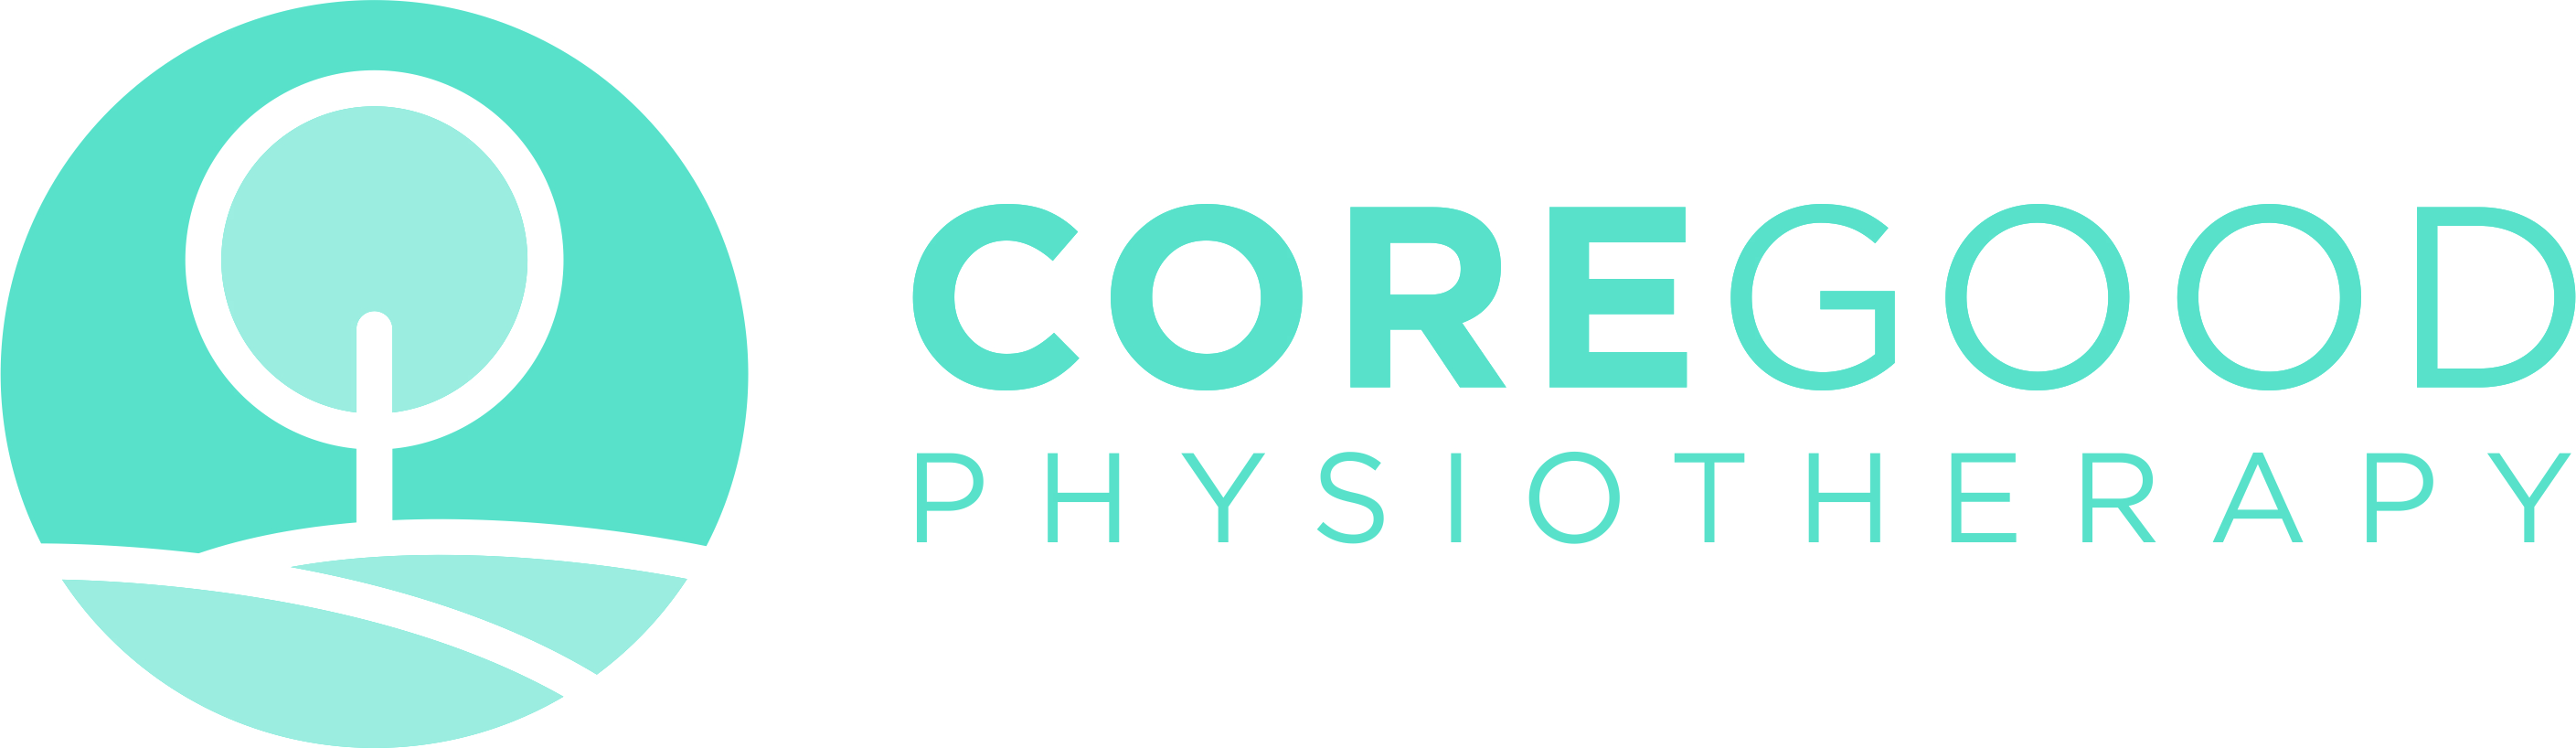 Coregood Physiotherapy